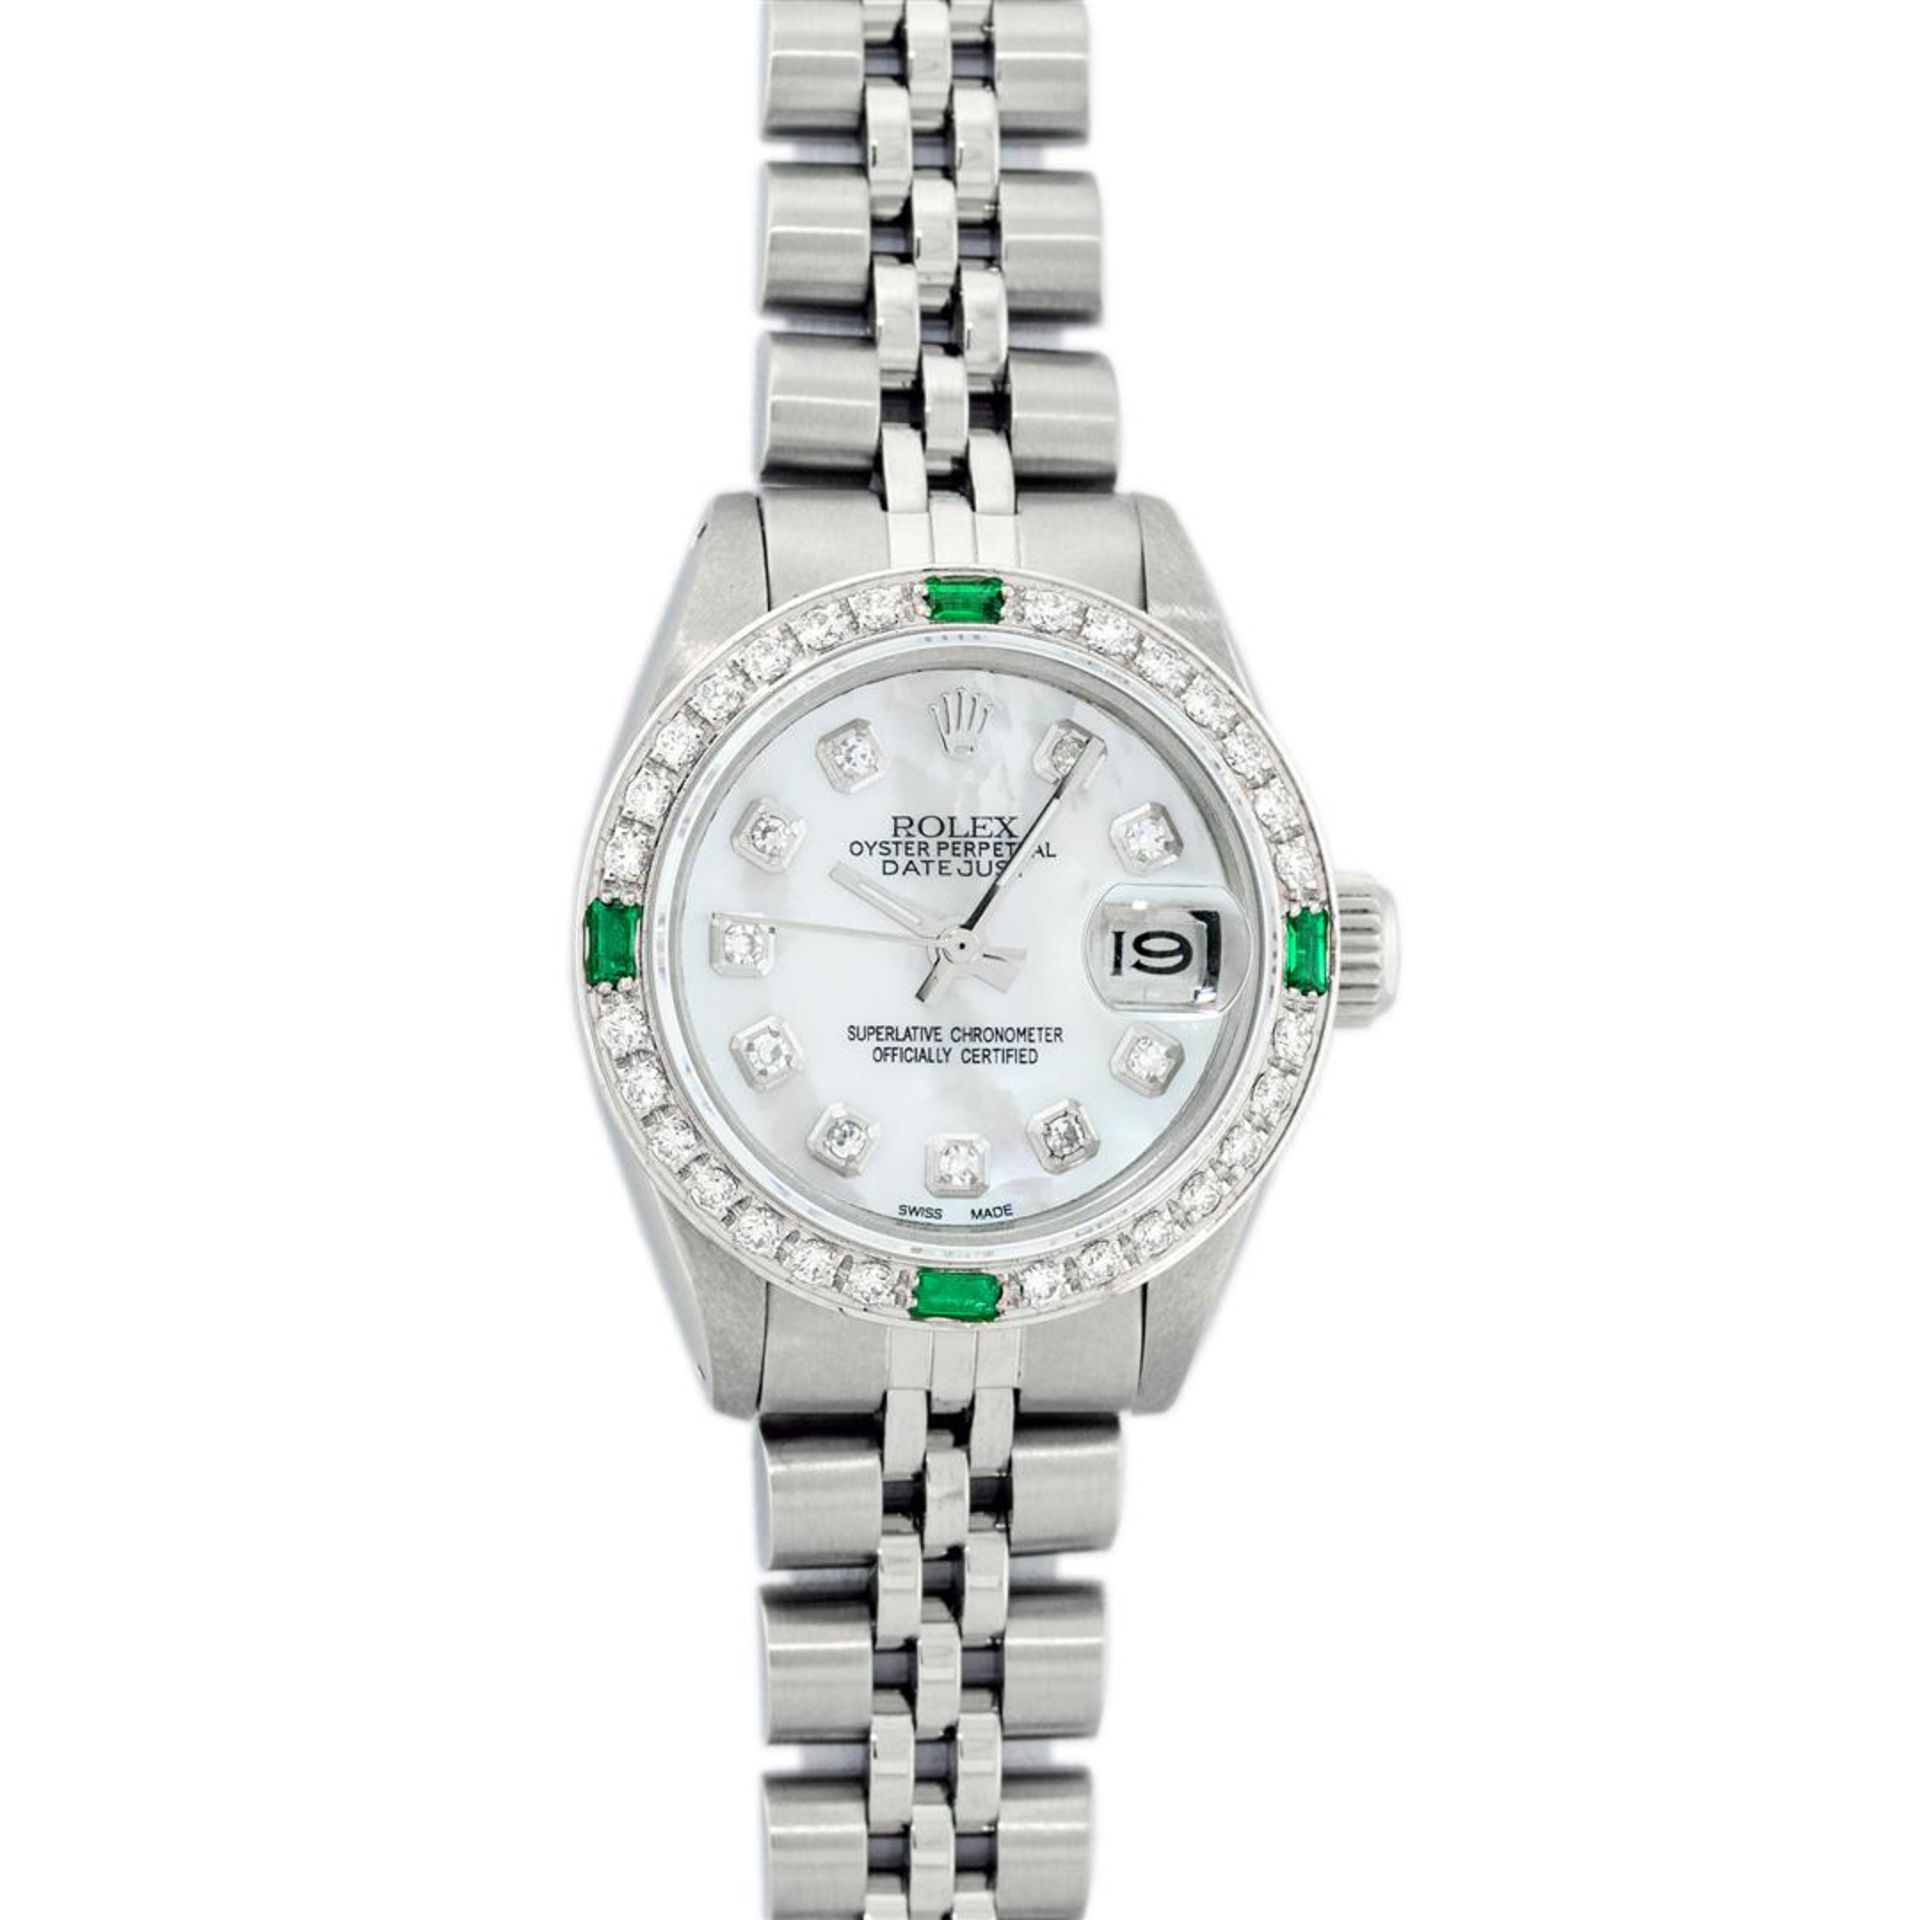 Rolex Ladies Stainless Steel Mother Of Pearl Diamond 26MM Datejust Wristwatch - Image 2 of 9